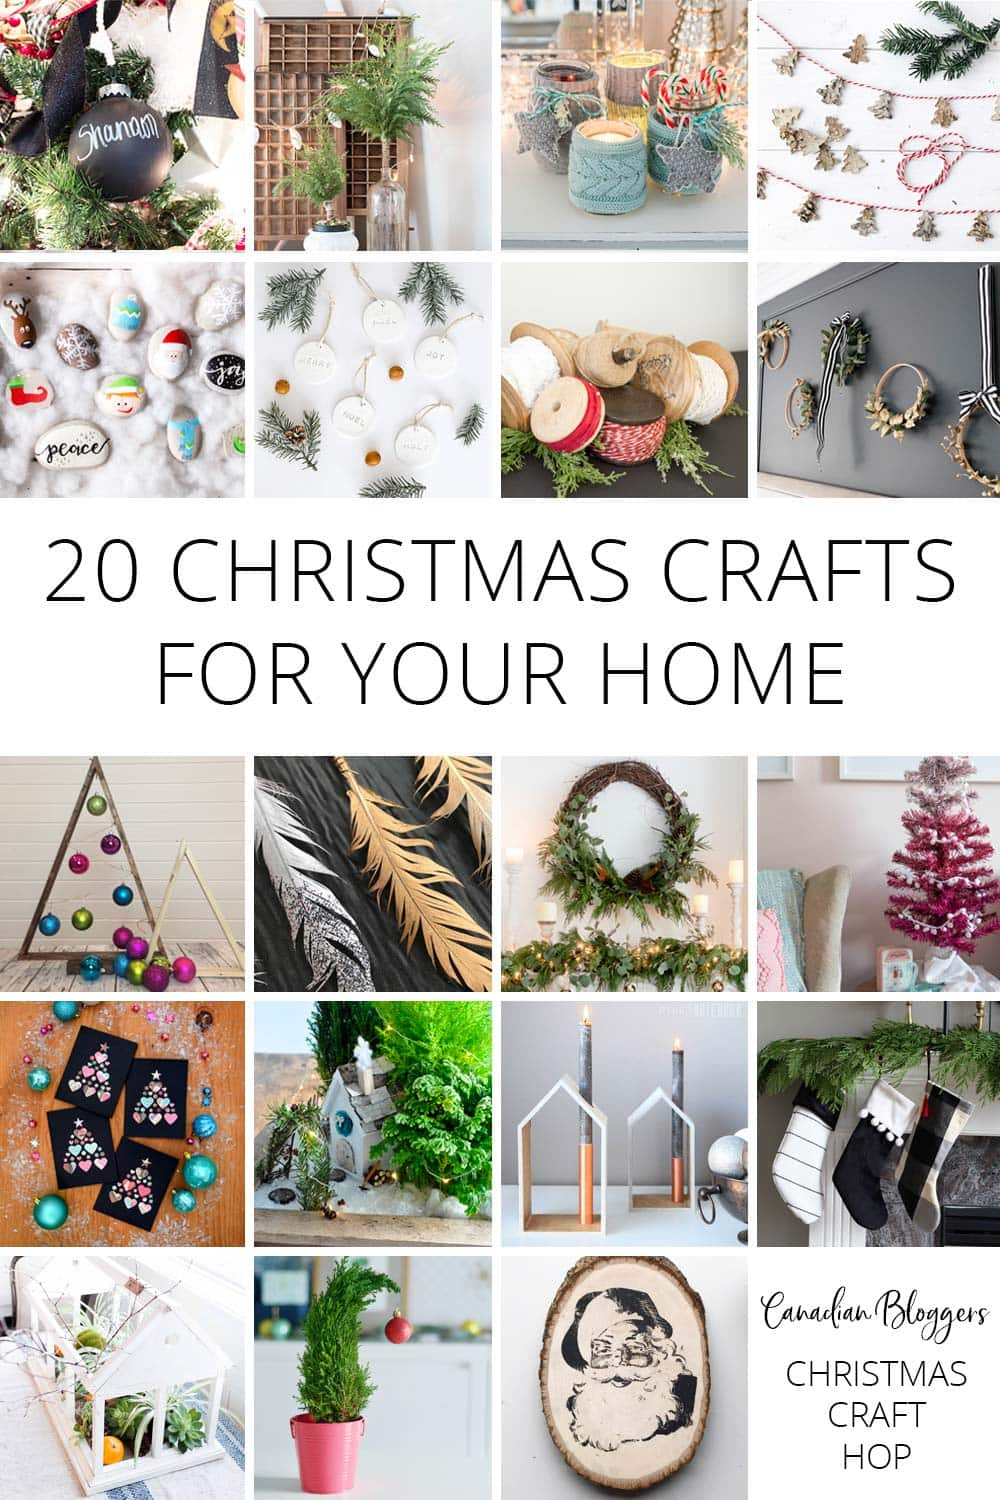 20 Christmas Crafts For Your Home